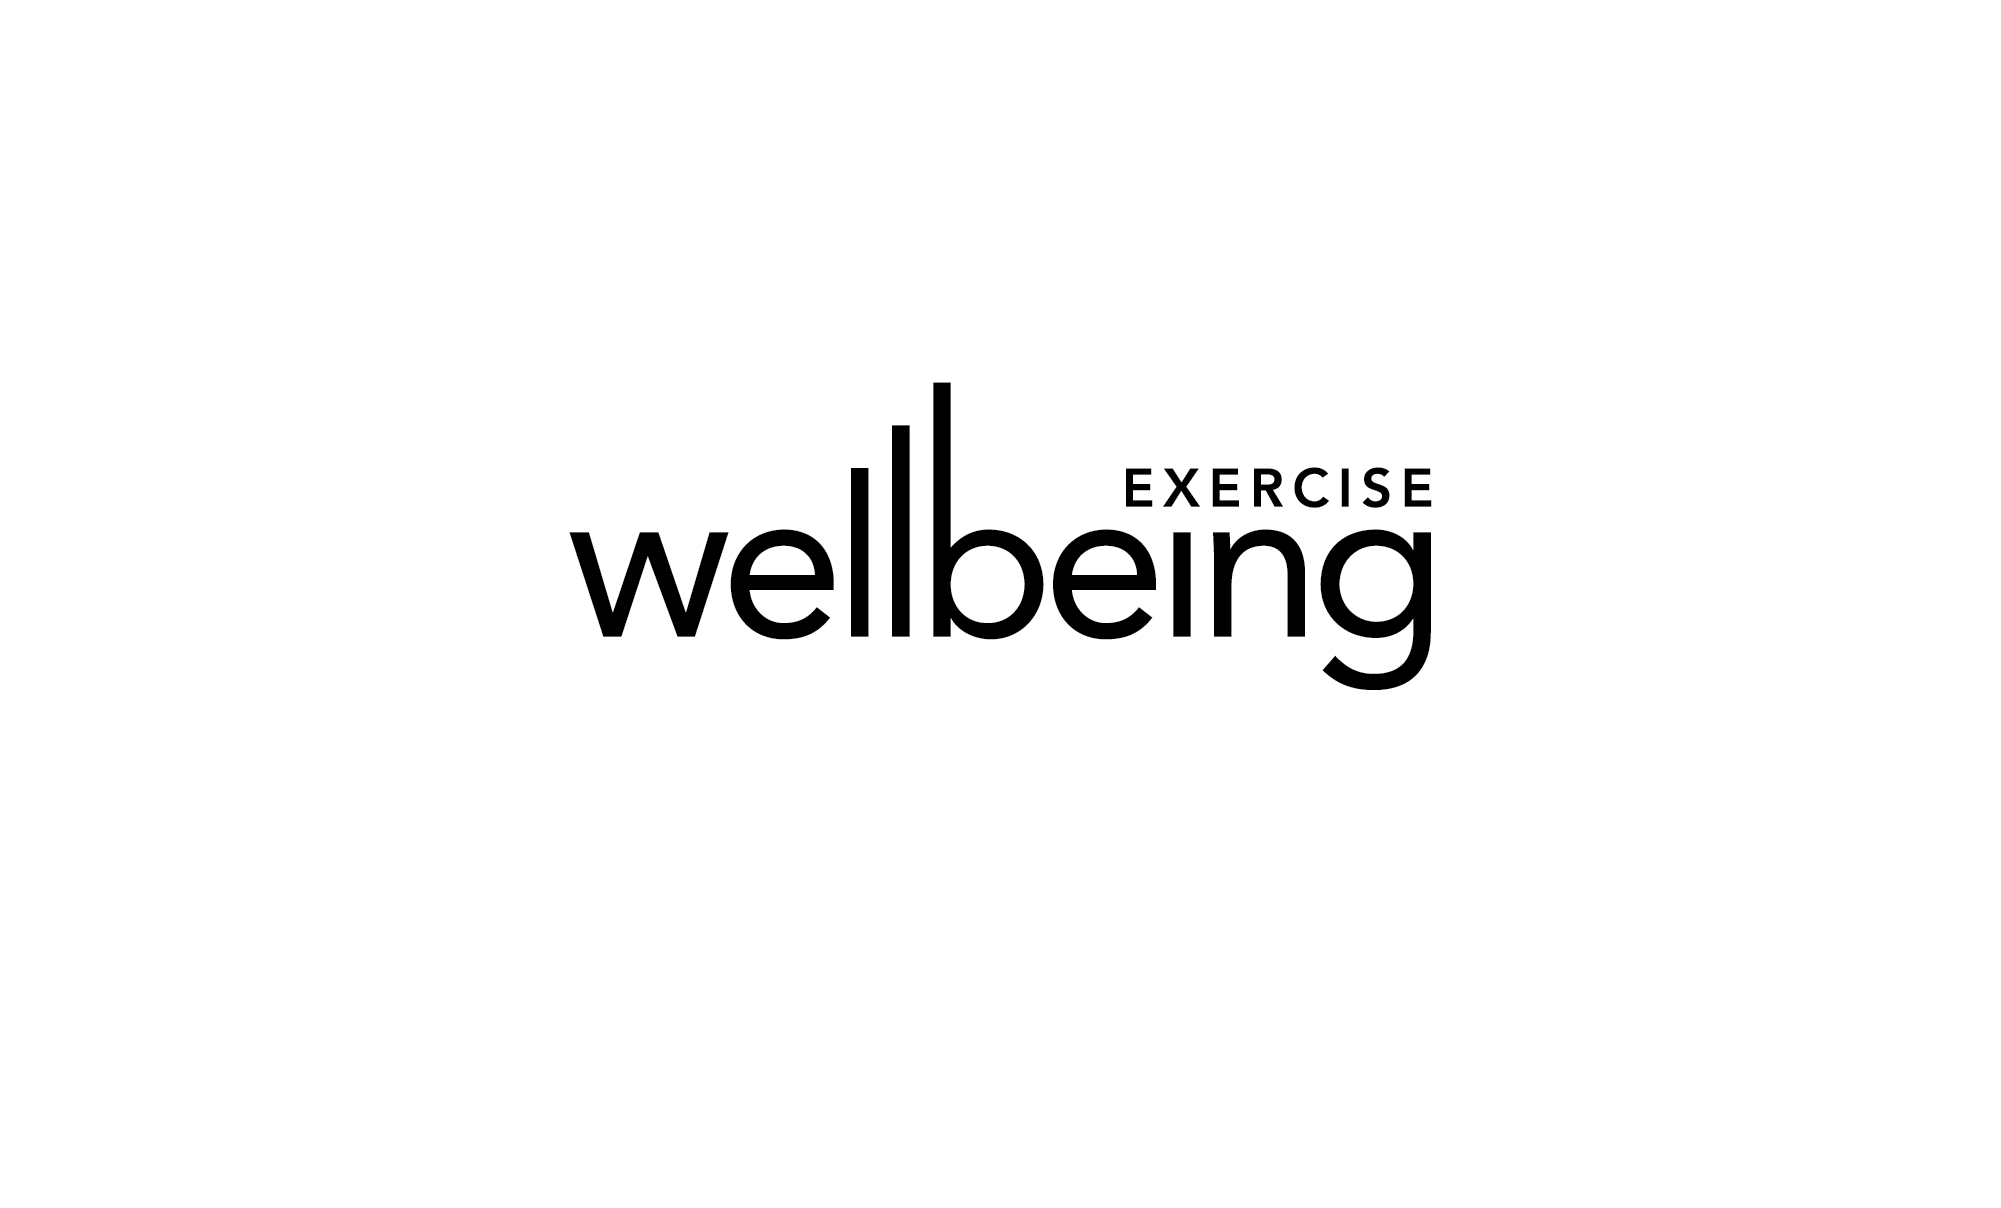 Wellbeing exercise